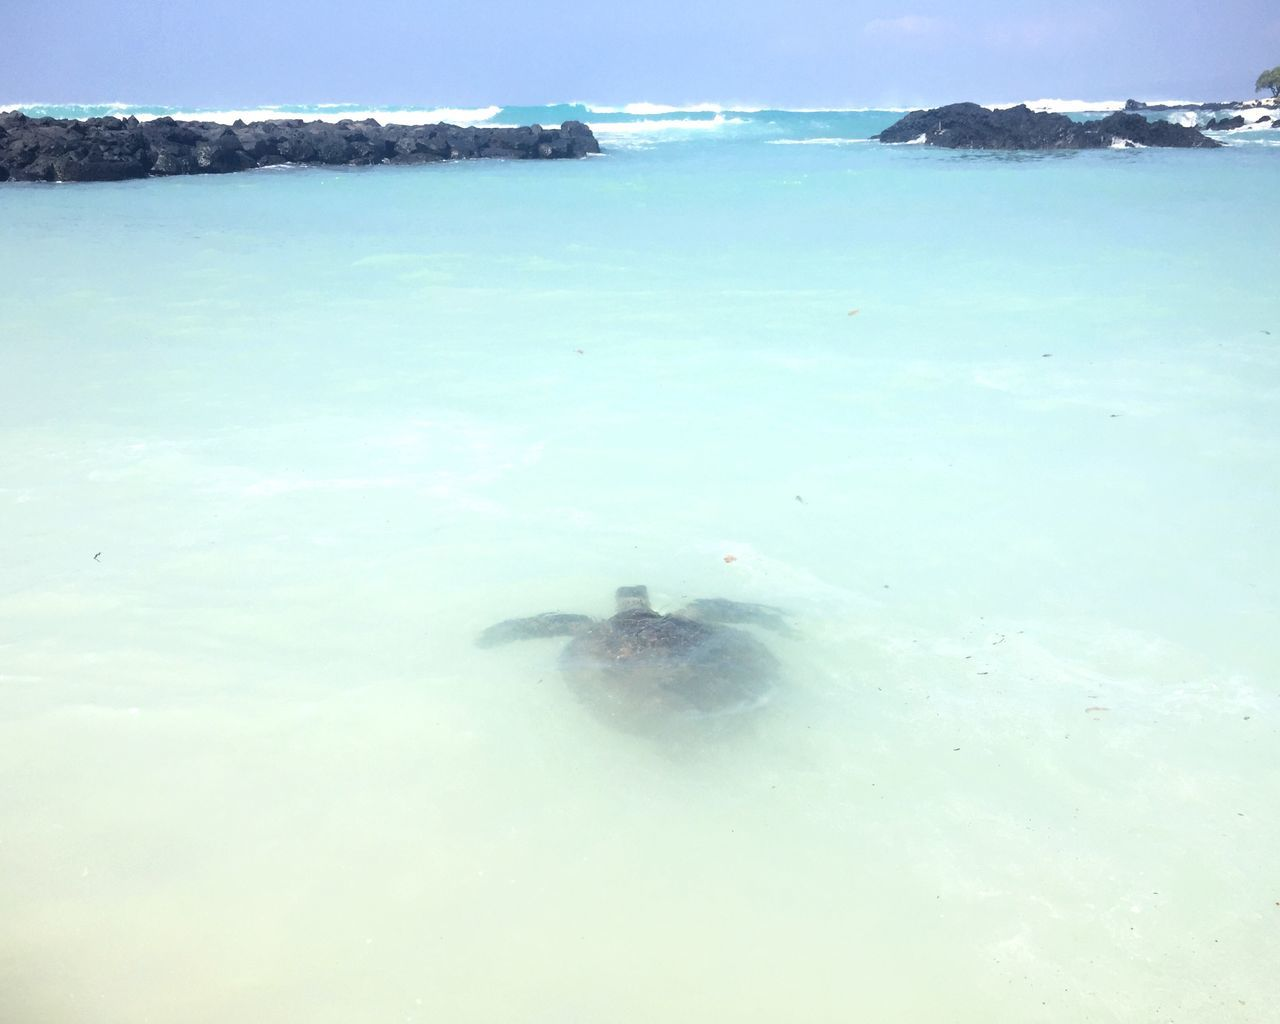 Sea Turtle Turtle Sea Water Nature Sky No People Scenics Underwater Day Outdoors Animal Themes Beauty In Nature UnderSea